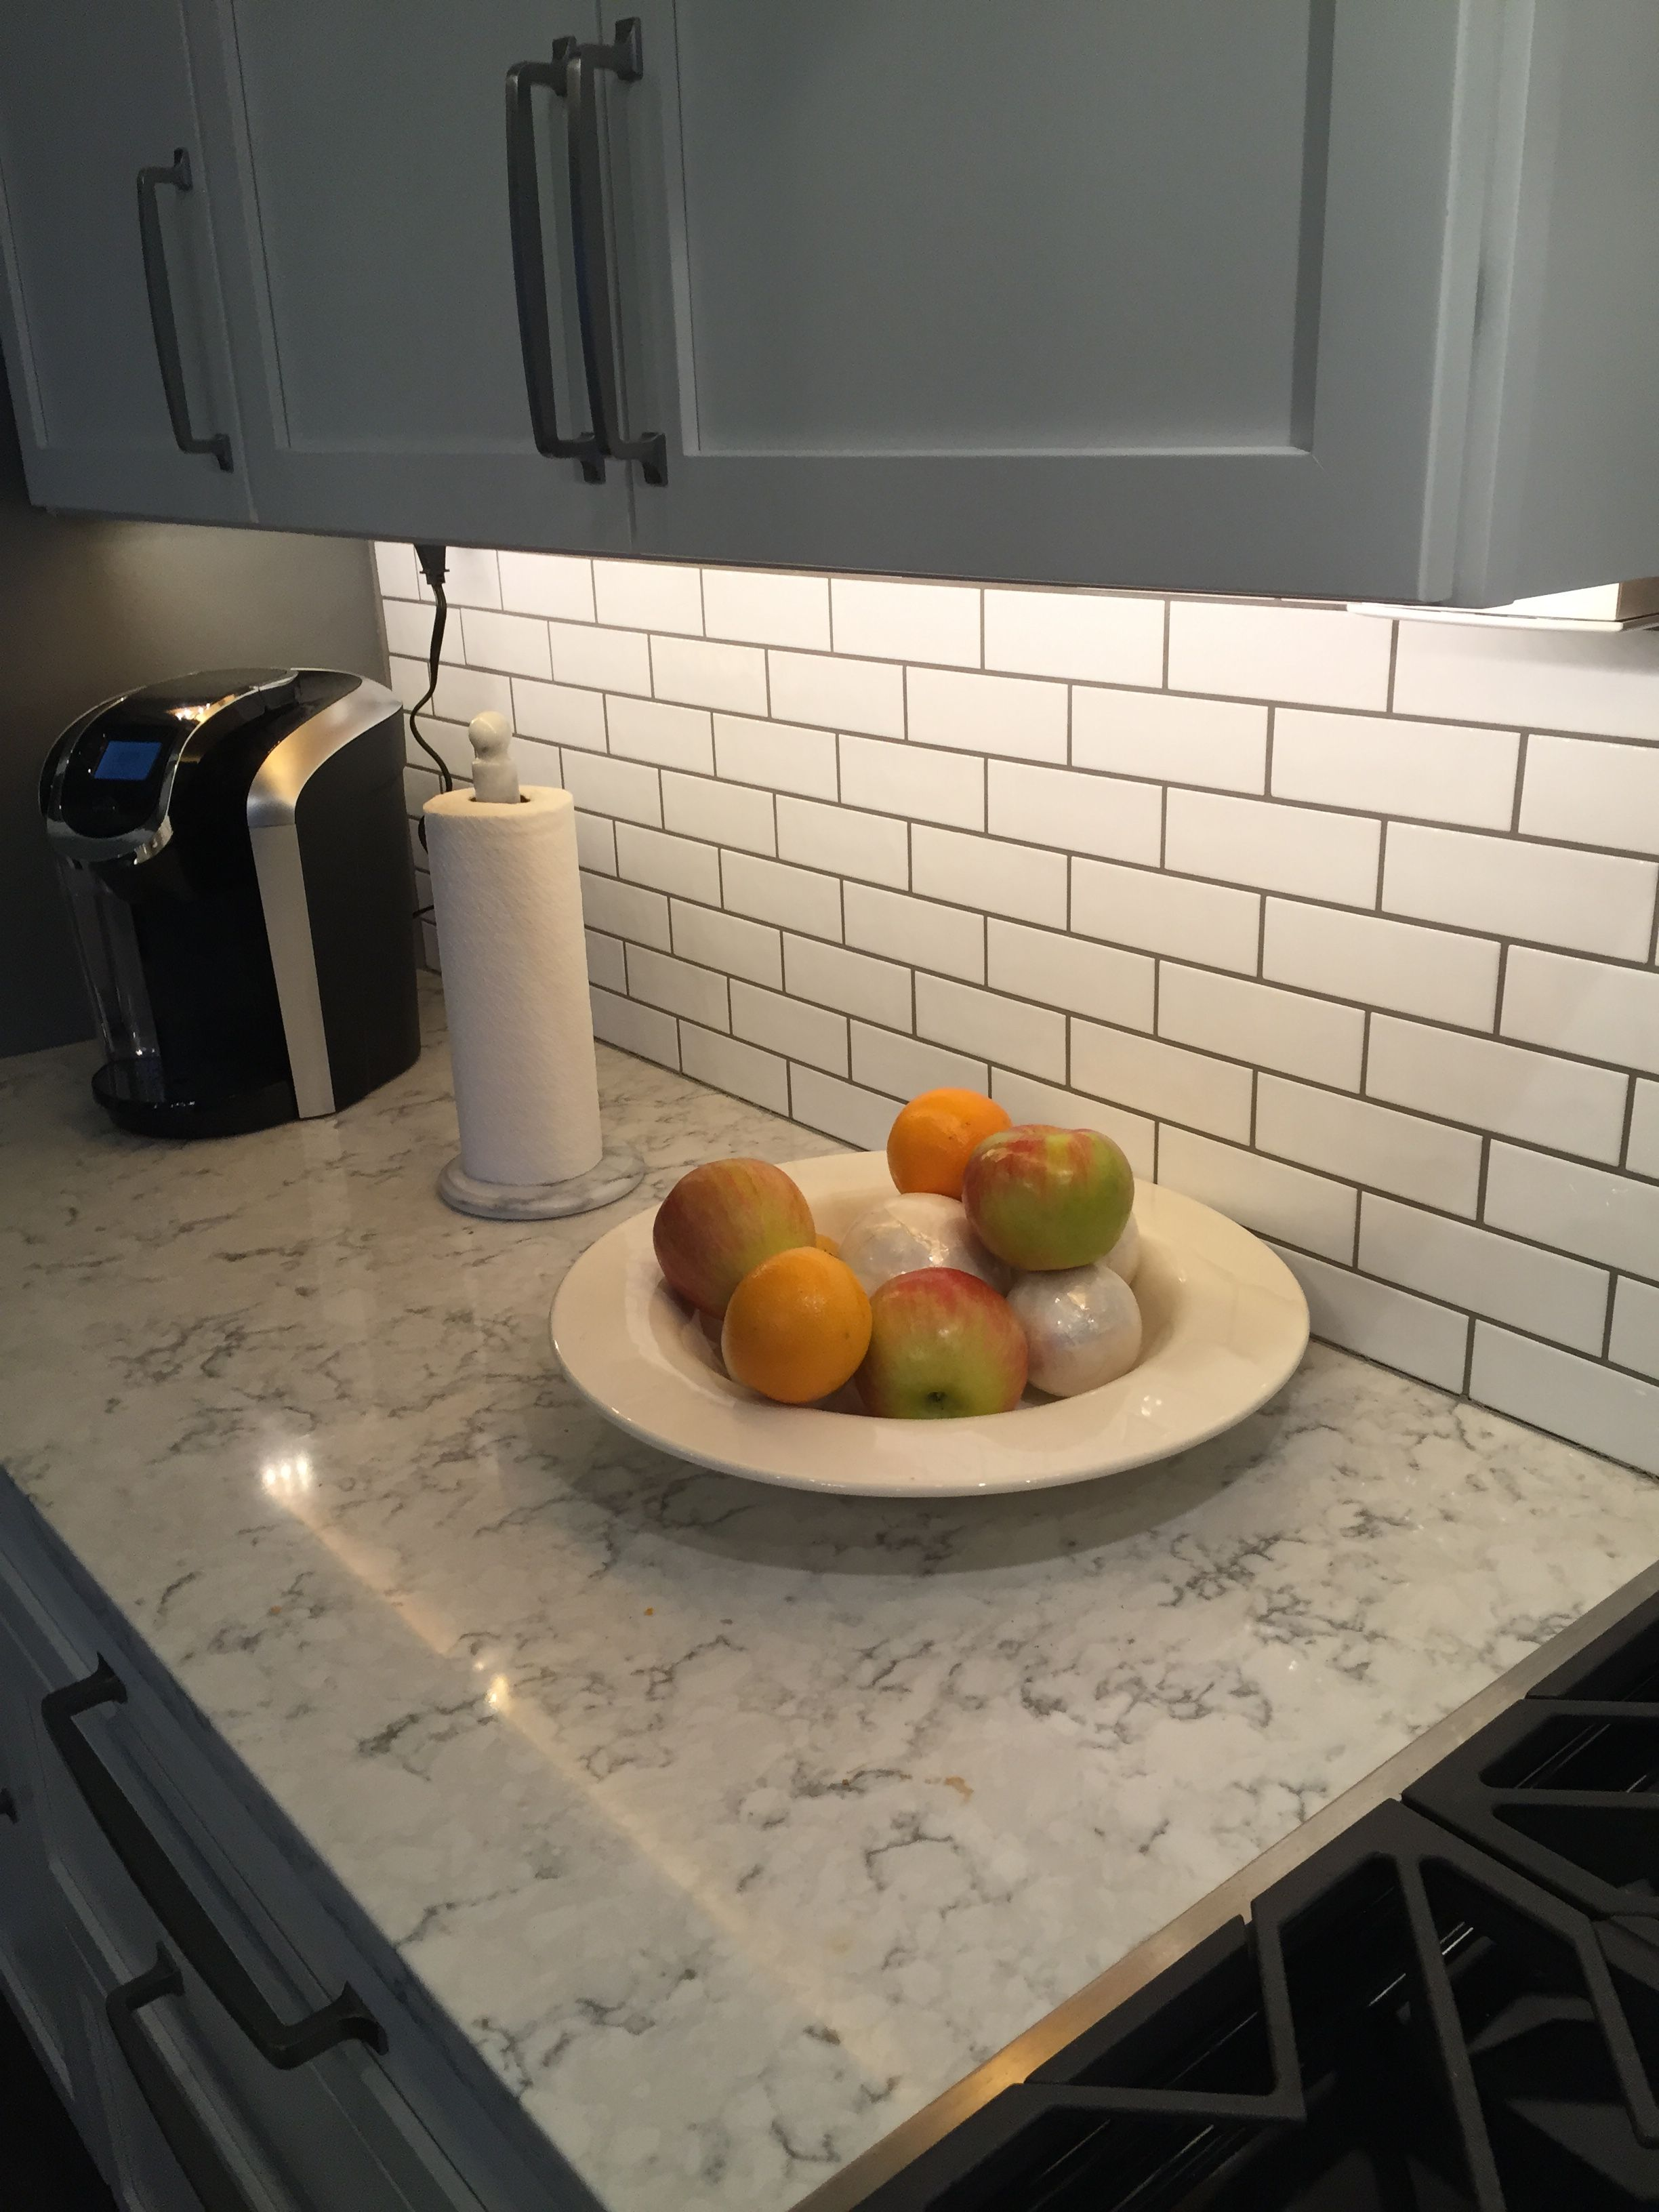 3cm Viatera Quartz Rococo Showing Subway Tile Backsplash Application